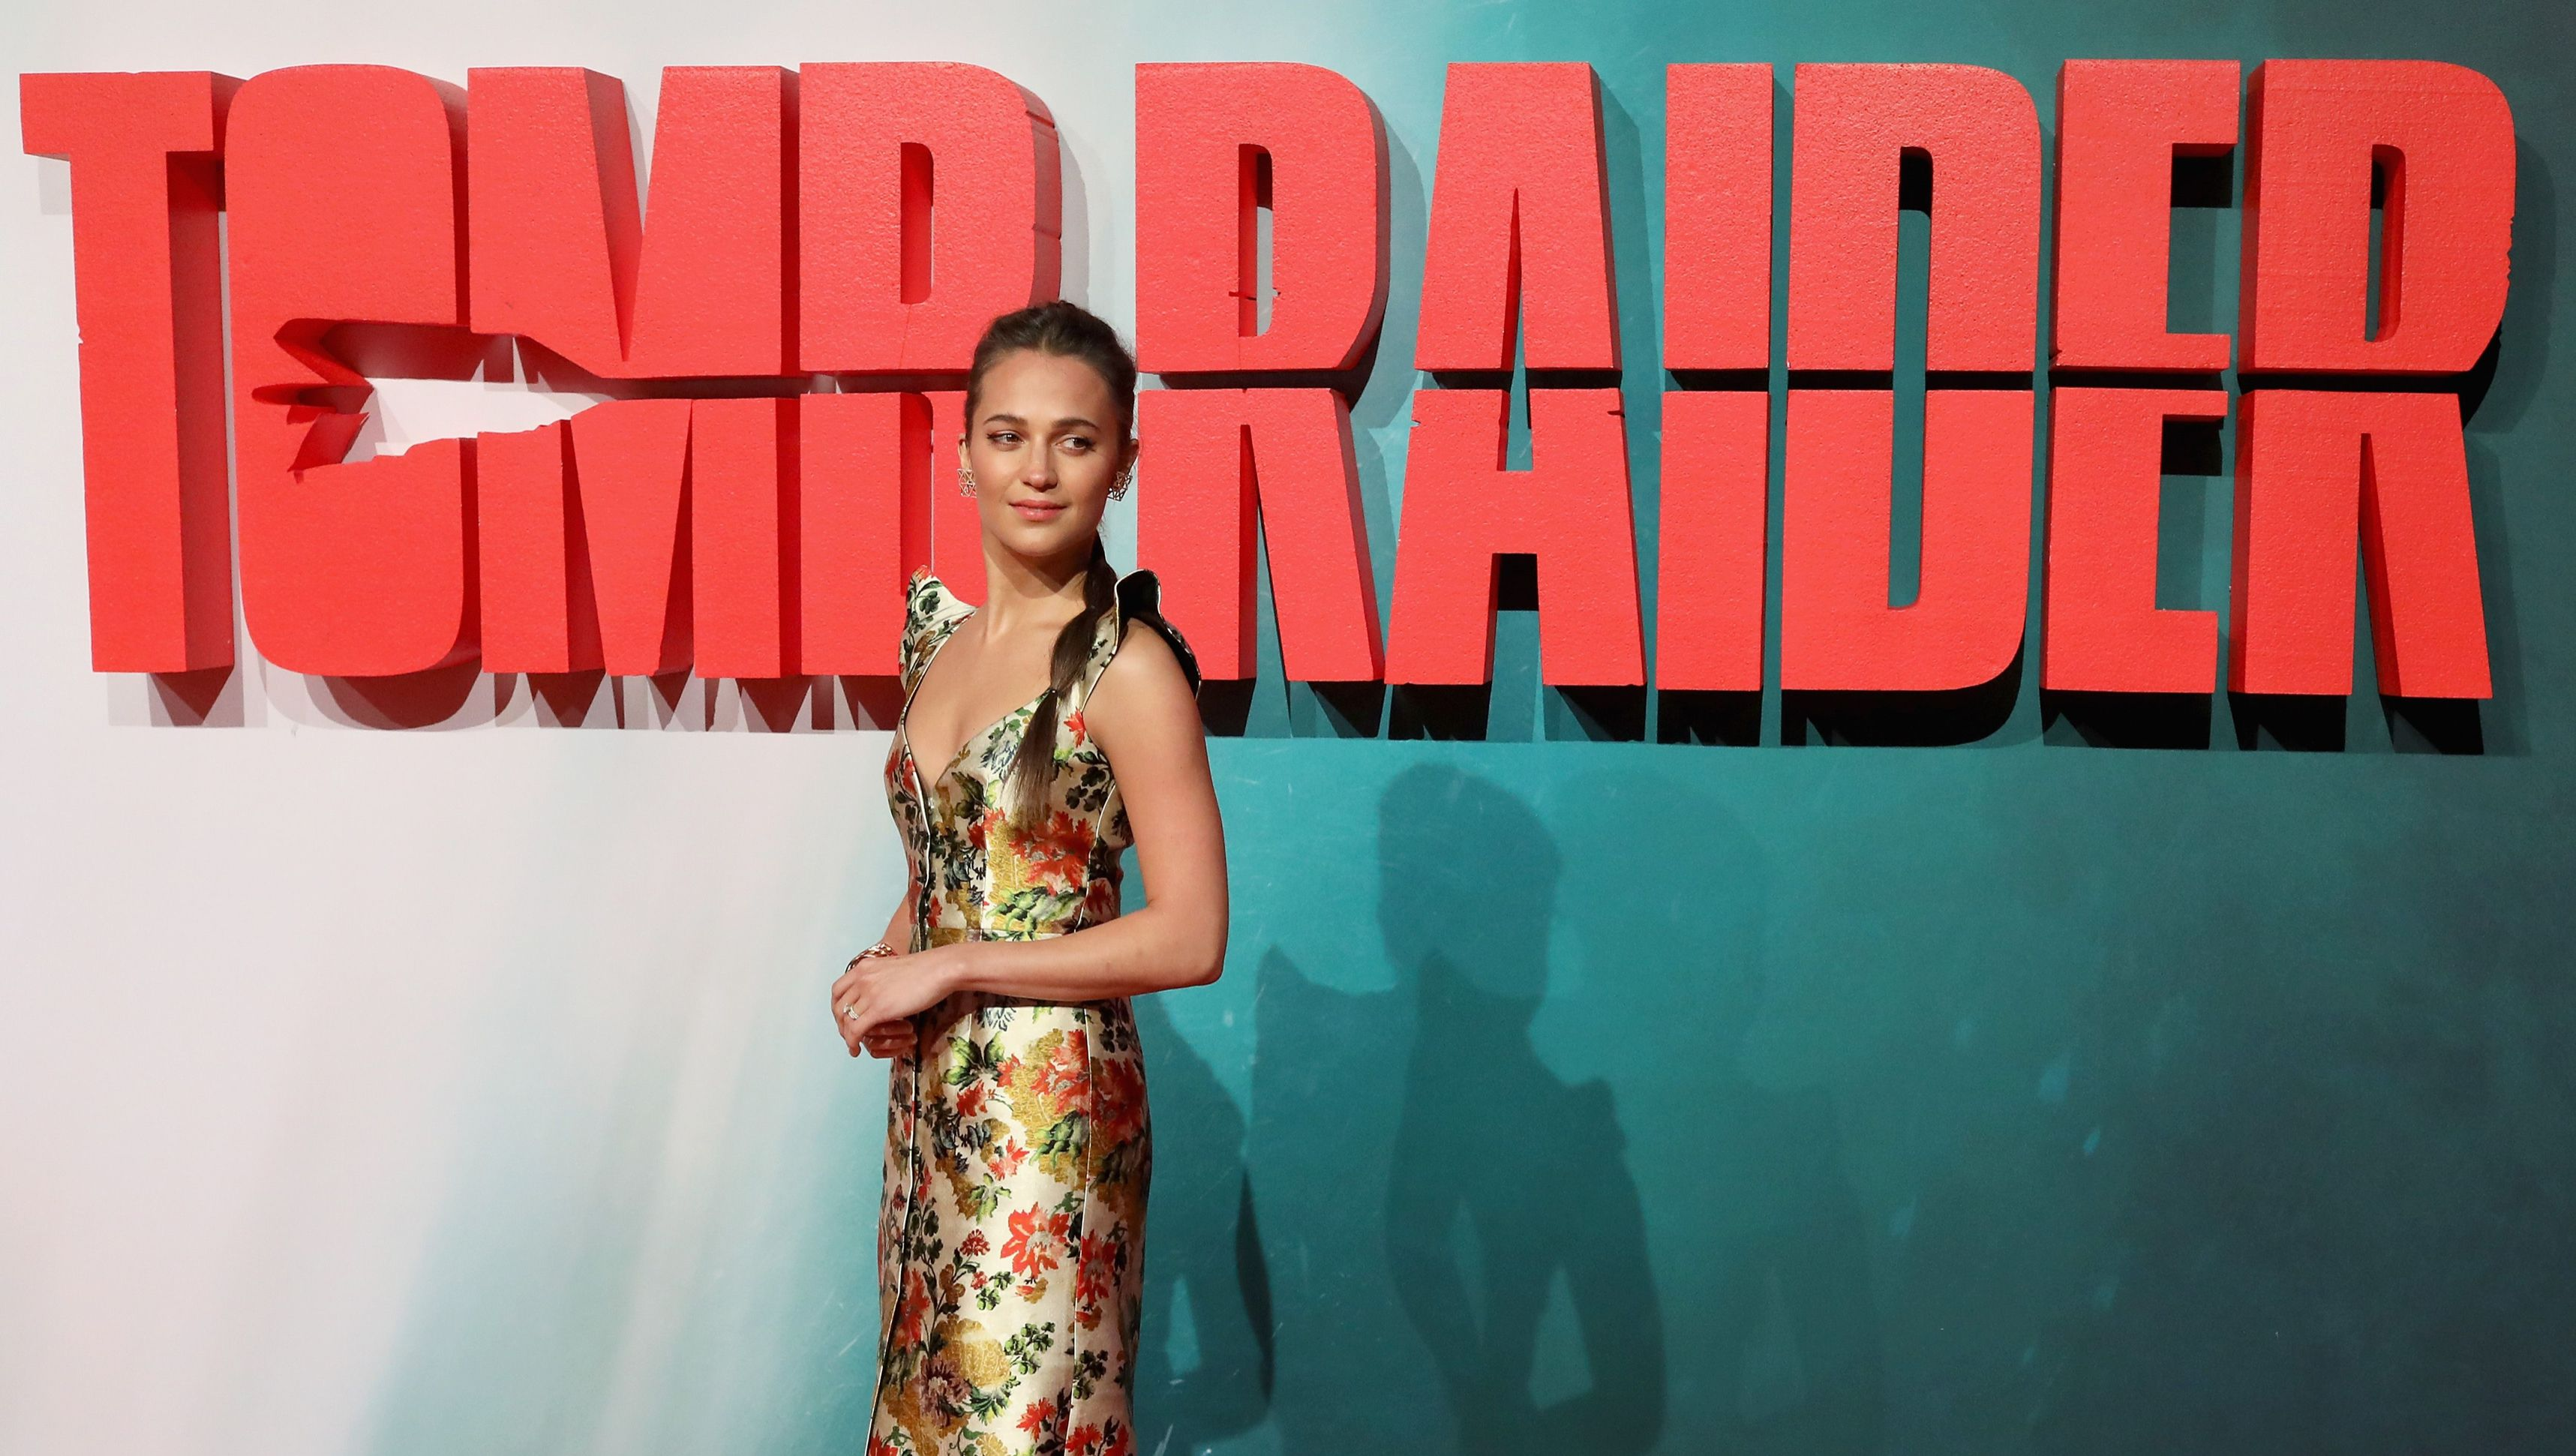 Alicia Vikander stands in a floral dress in front of a 'Tomb Raider' sign.